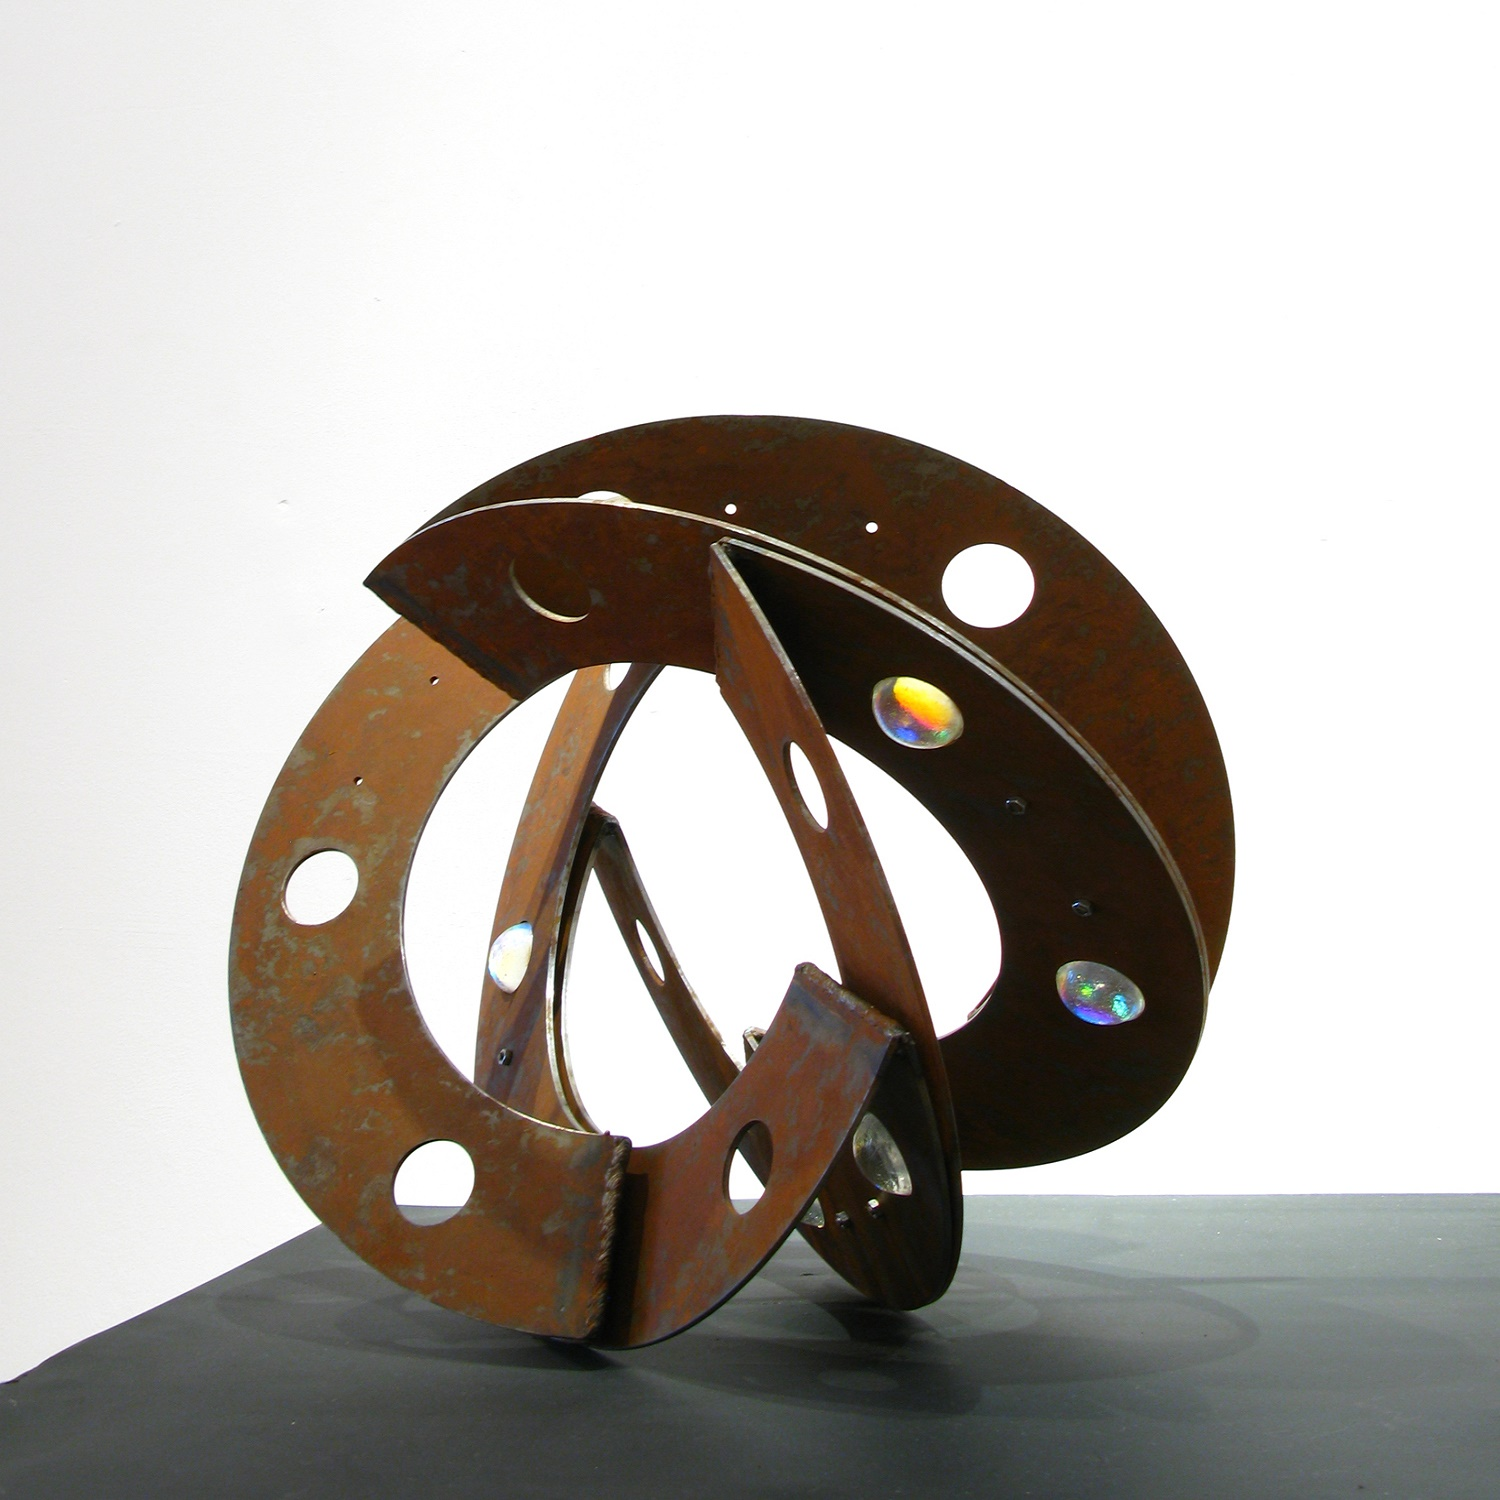 Yuki Kokai glass and metal sculpture